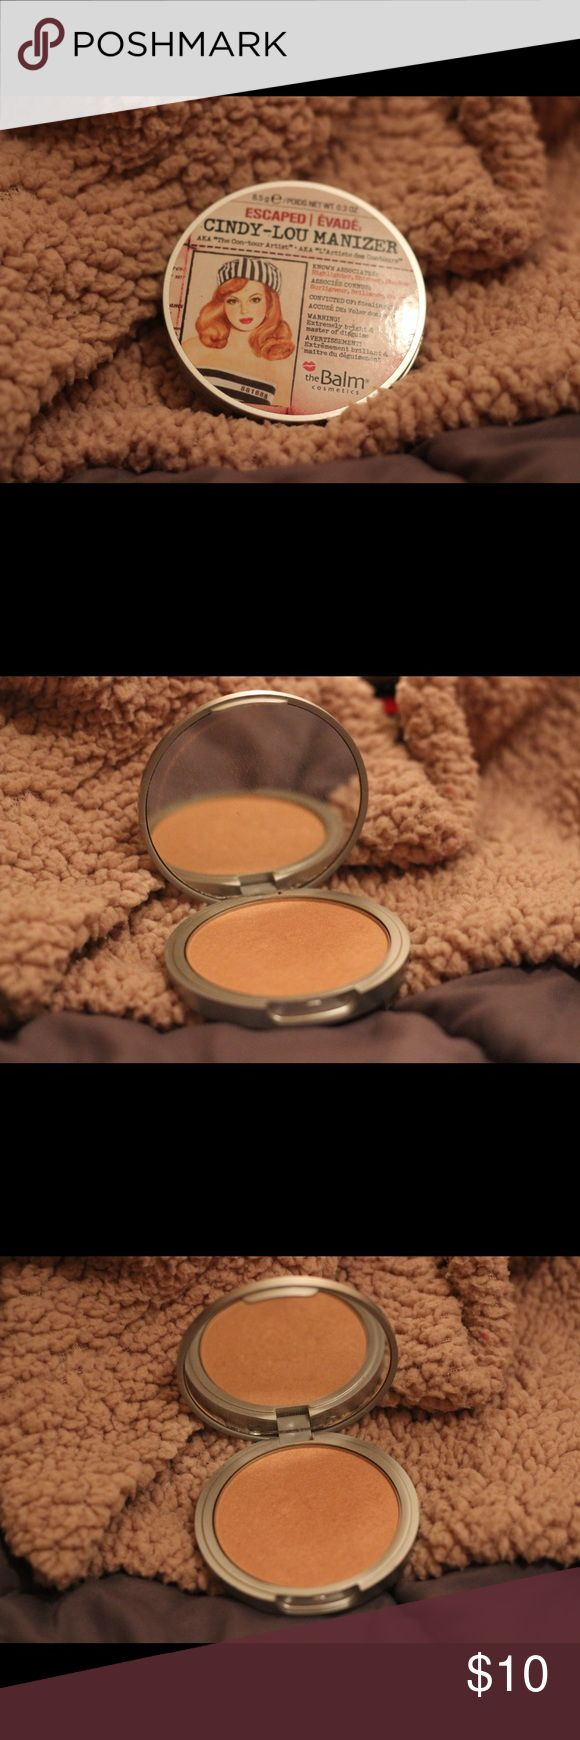 TheBalm Cindy-Lou face illuminator Authentic. Used only a couple times. TheBalm Makeup Blush